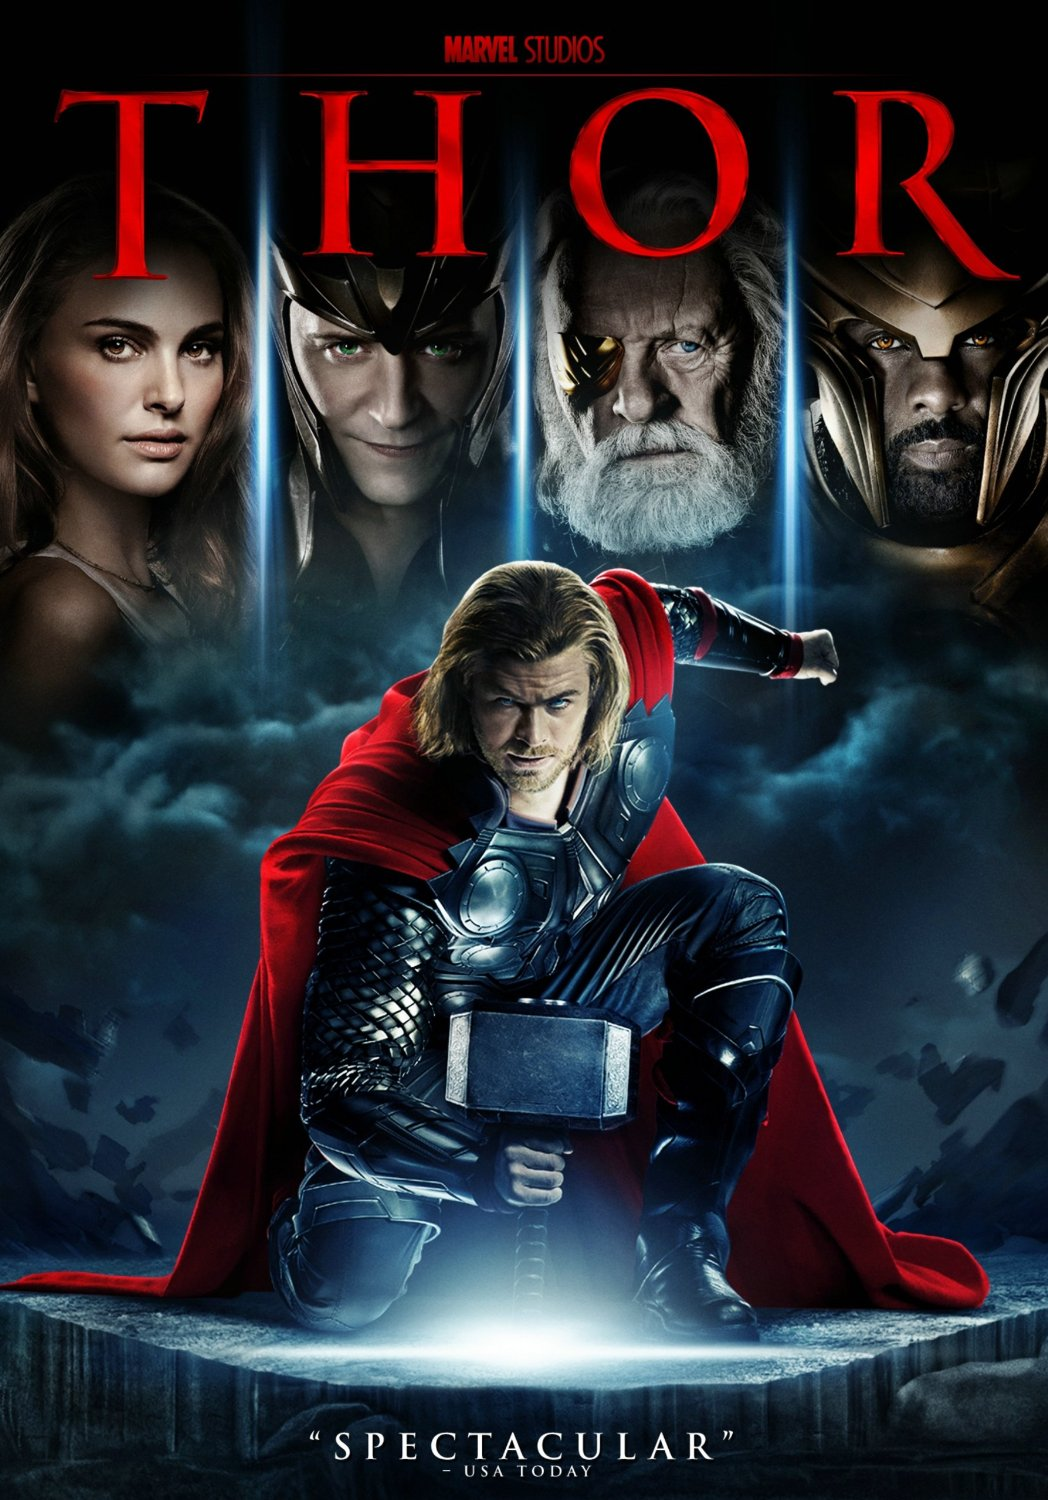 Thor starring Chris Hemsworth and Natalie Portman is the best Thor film to date. In the first film of the series, Thor is stripped of his powers after disobeying his father and sent down to Earth as a mortal. Trouble ensues on his home planet of Asgard, causing people on the planet to contact Thor […]